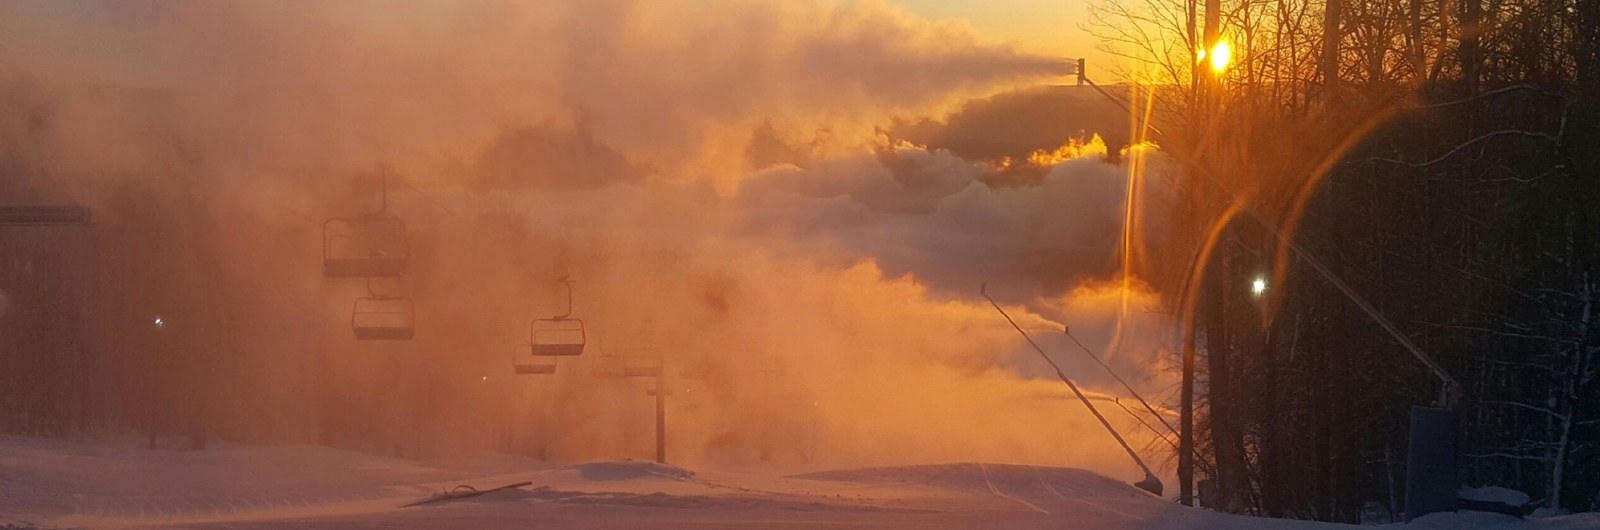 Snowmaking guns spraying snow over mountain slope during early morning sunrise